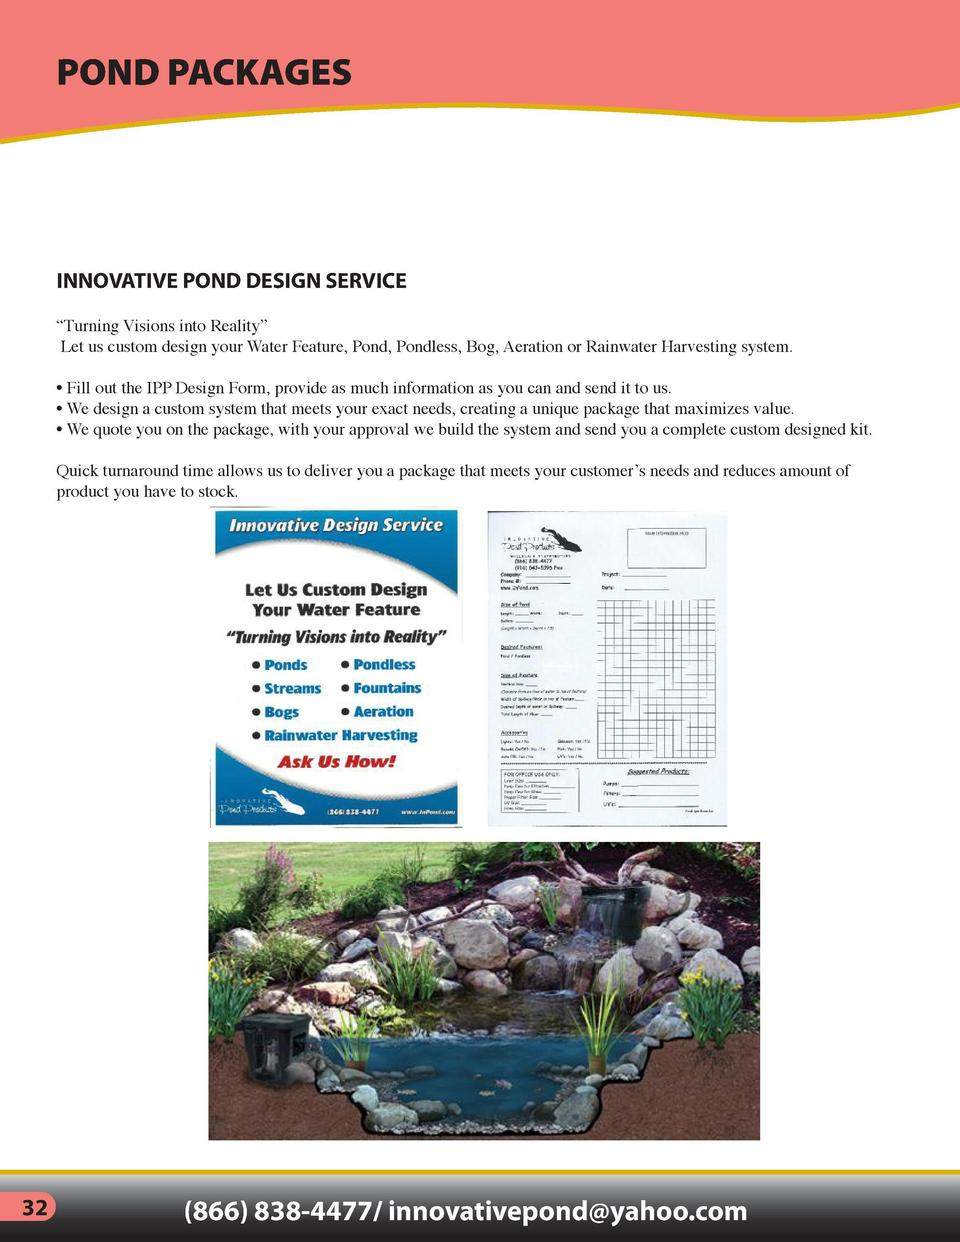 POND PACKAGES  INNOVATIVE POND DESIGN SERVICE  PROFESSIONAL POND KITS     Turning Visions into Reality    Let us custom de...